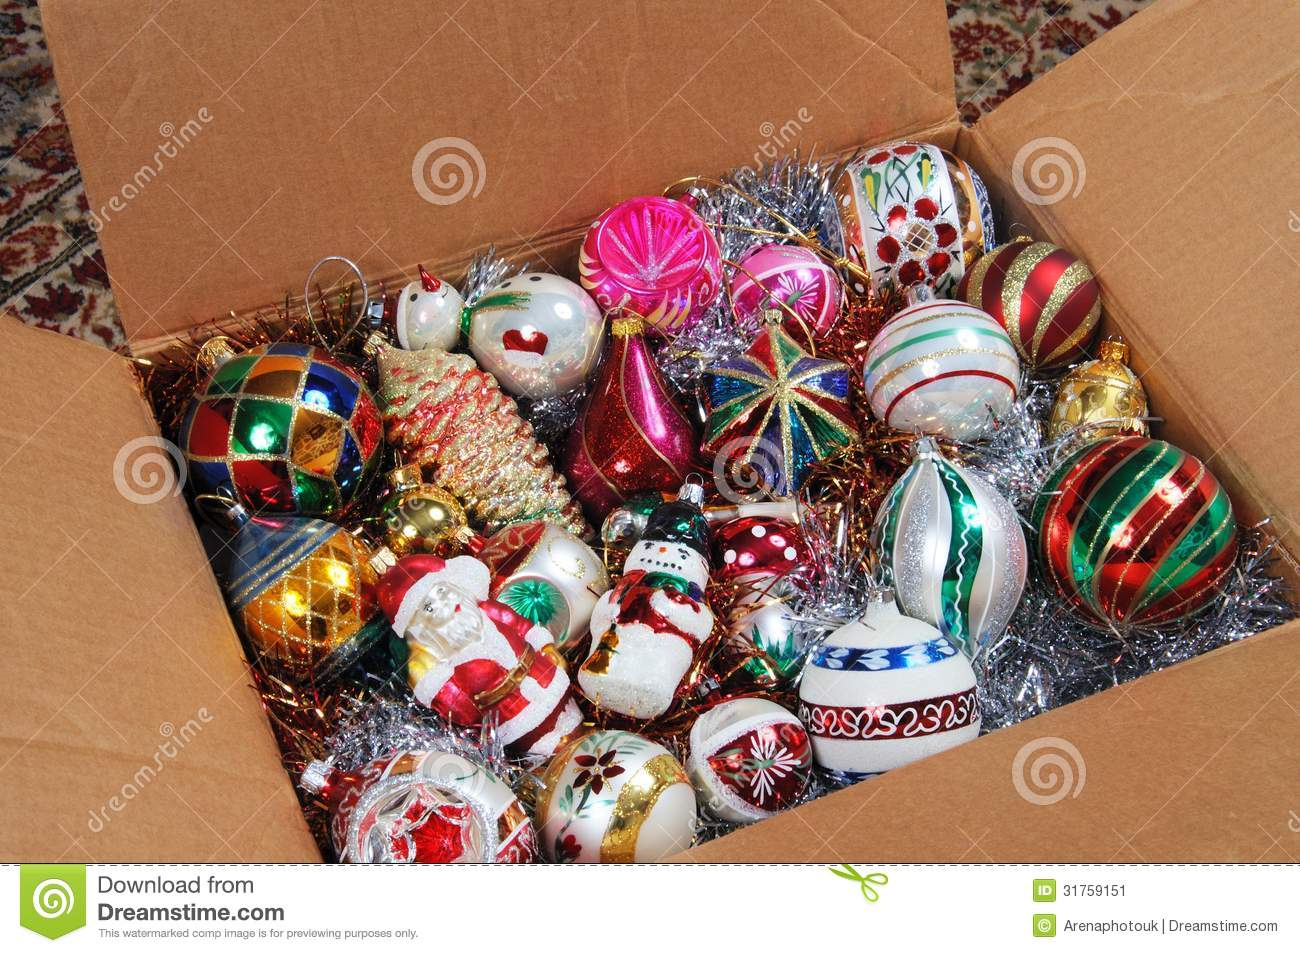 Christmas Box Decorations Part - 27: Royalty-Free Stock Photo. Download Christmas Ornaments In Cardboard Box.